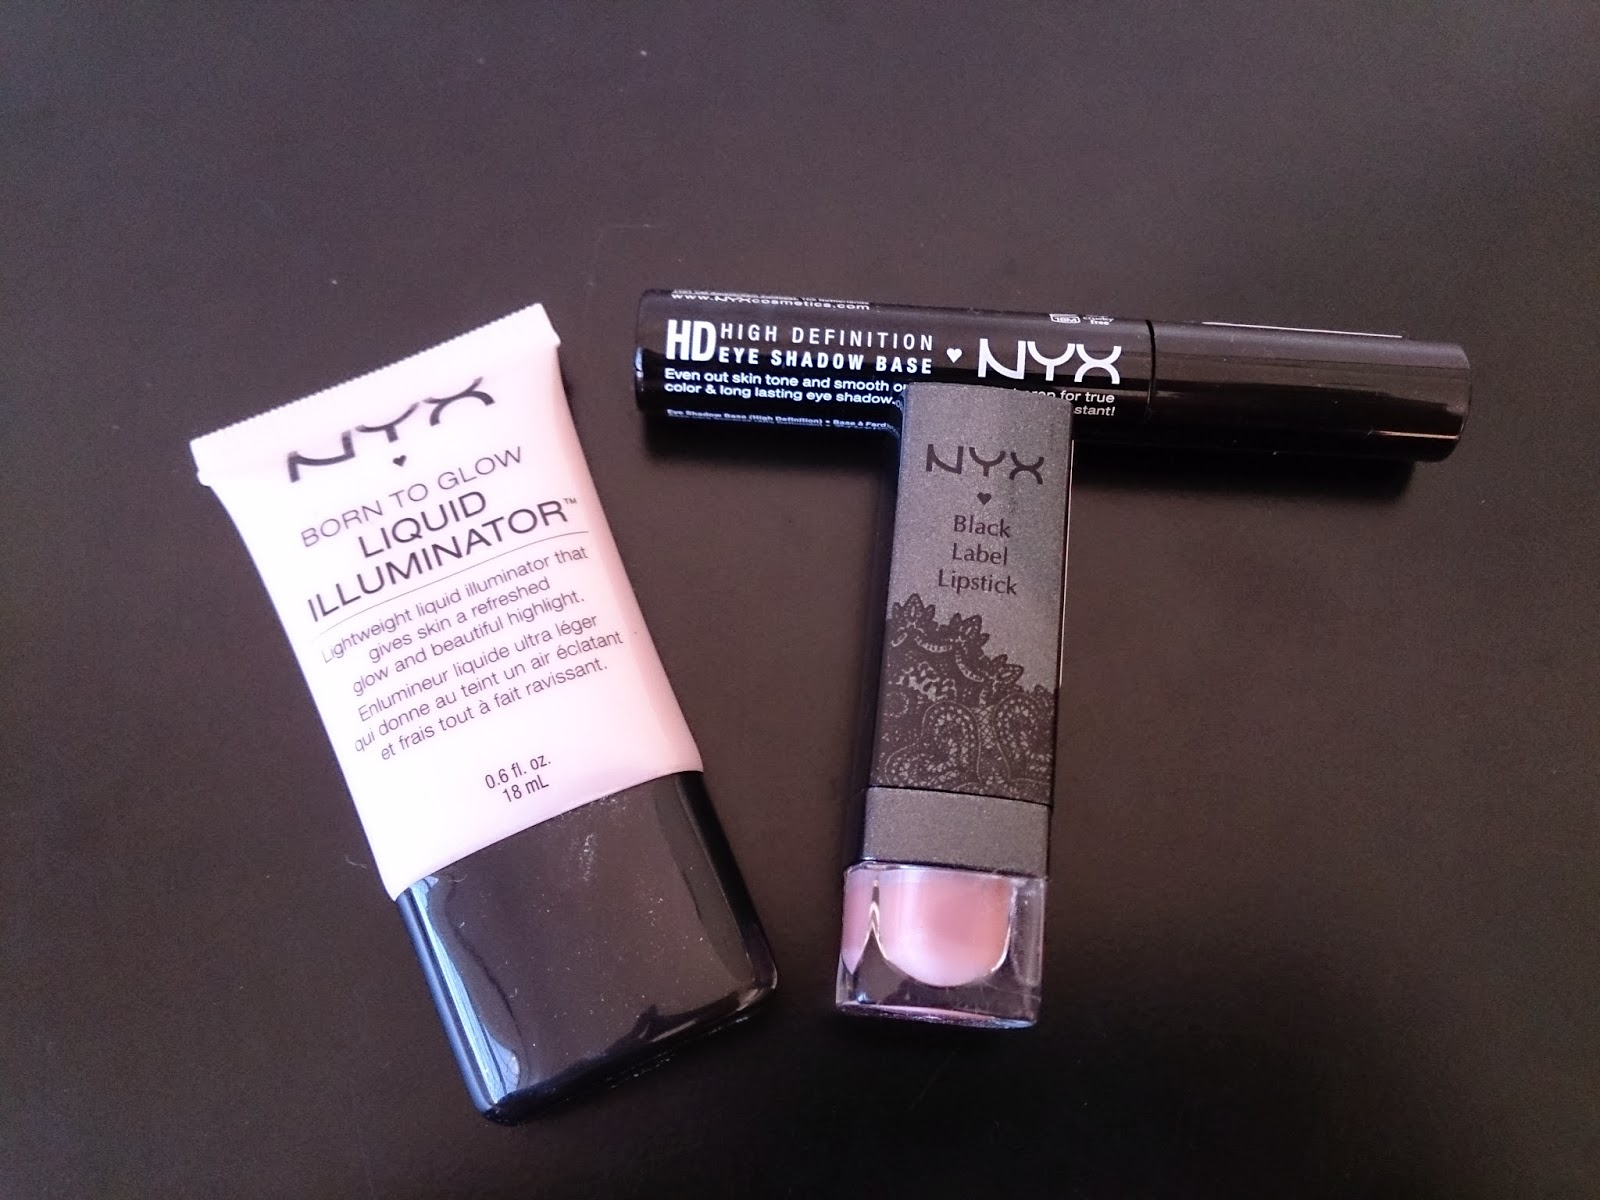 NYX Cosmetics makeup haul liquid illuniator sunbeam high definition eyeshadow base primer black label lipstick nude